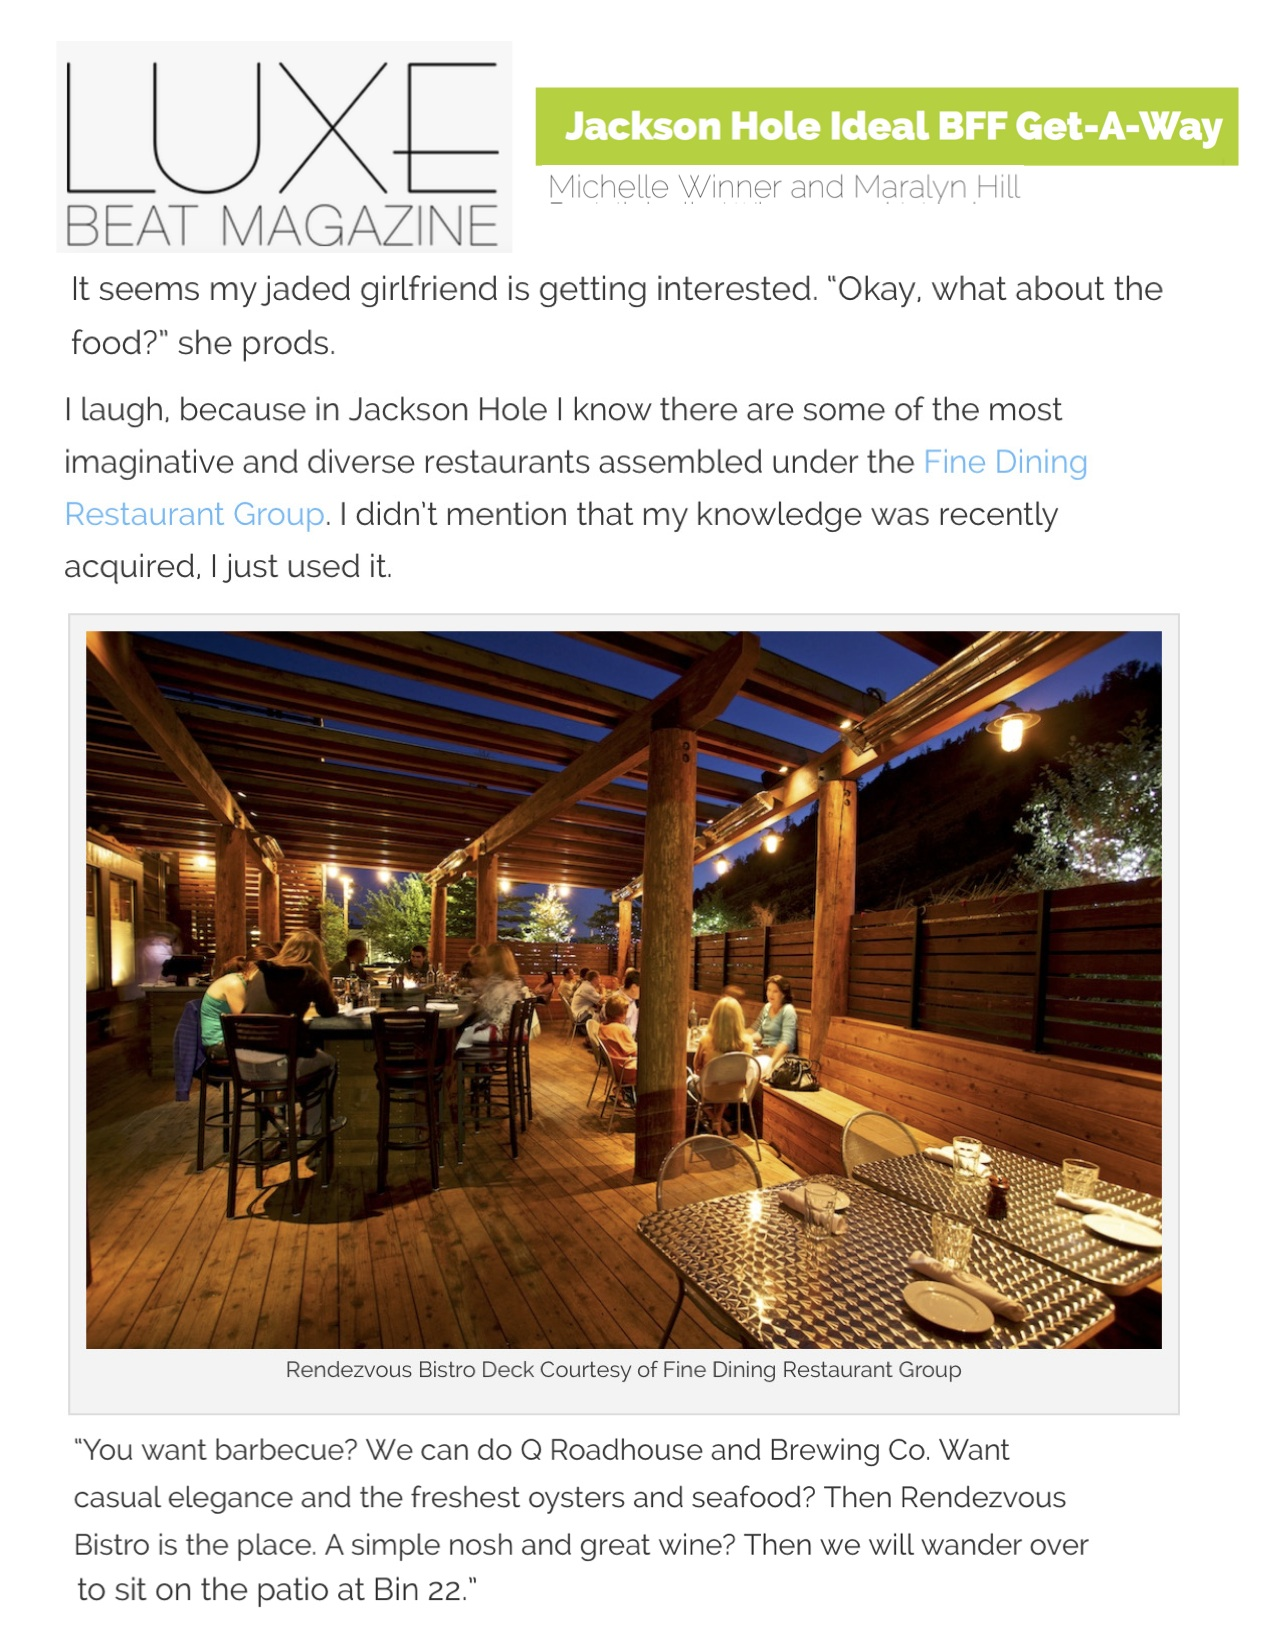 Press item at Bin 22 - Luxe Beat Magazine